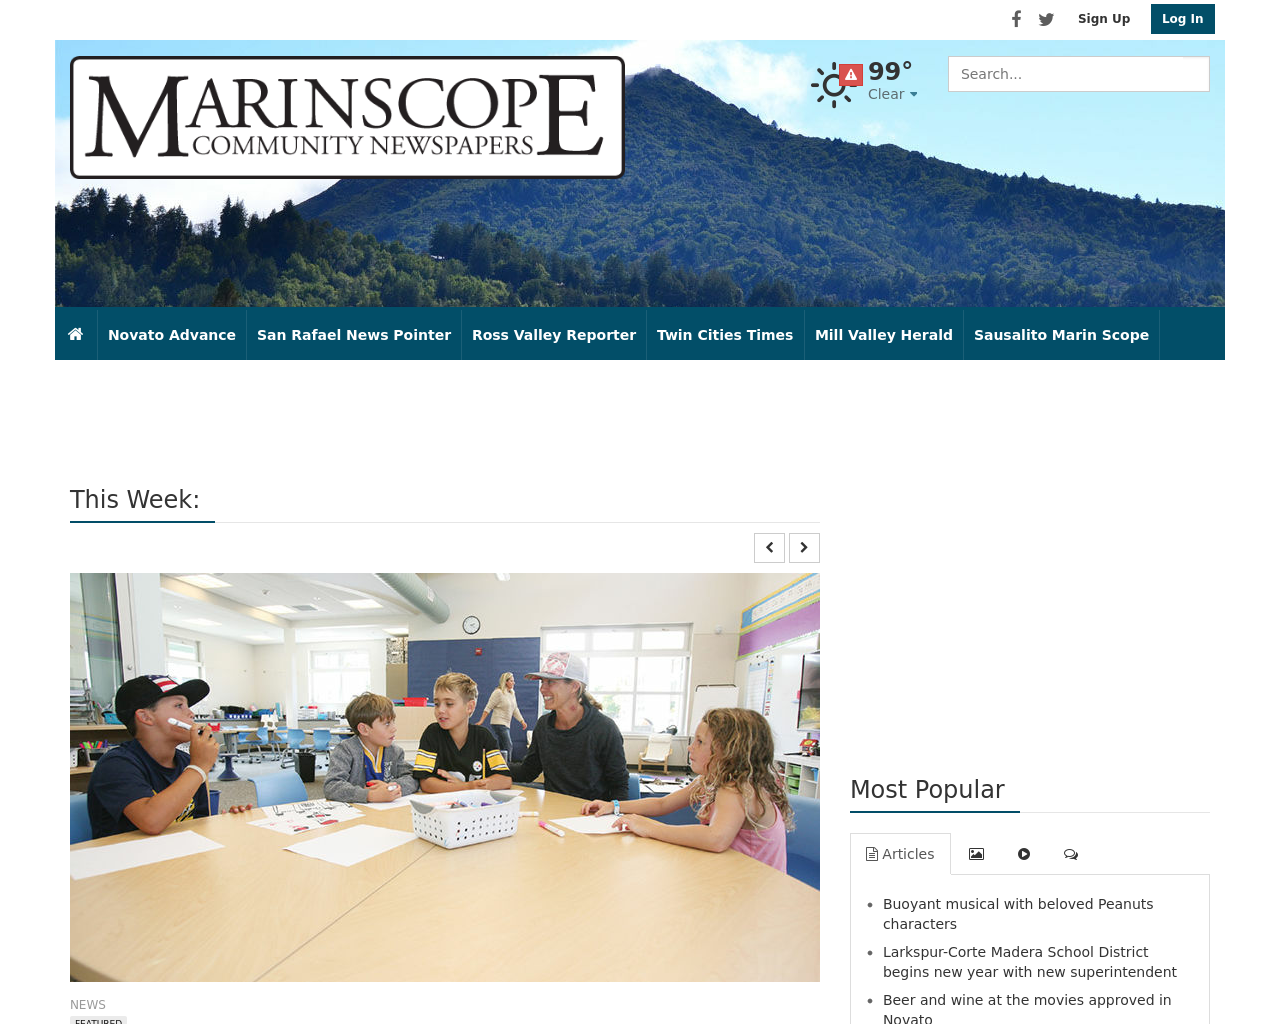 Marinscope-Community-Newspapers-Advertising-Reviews-Pricing